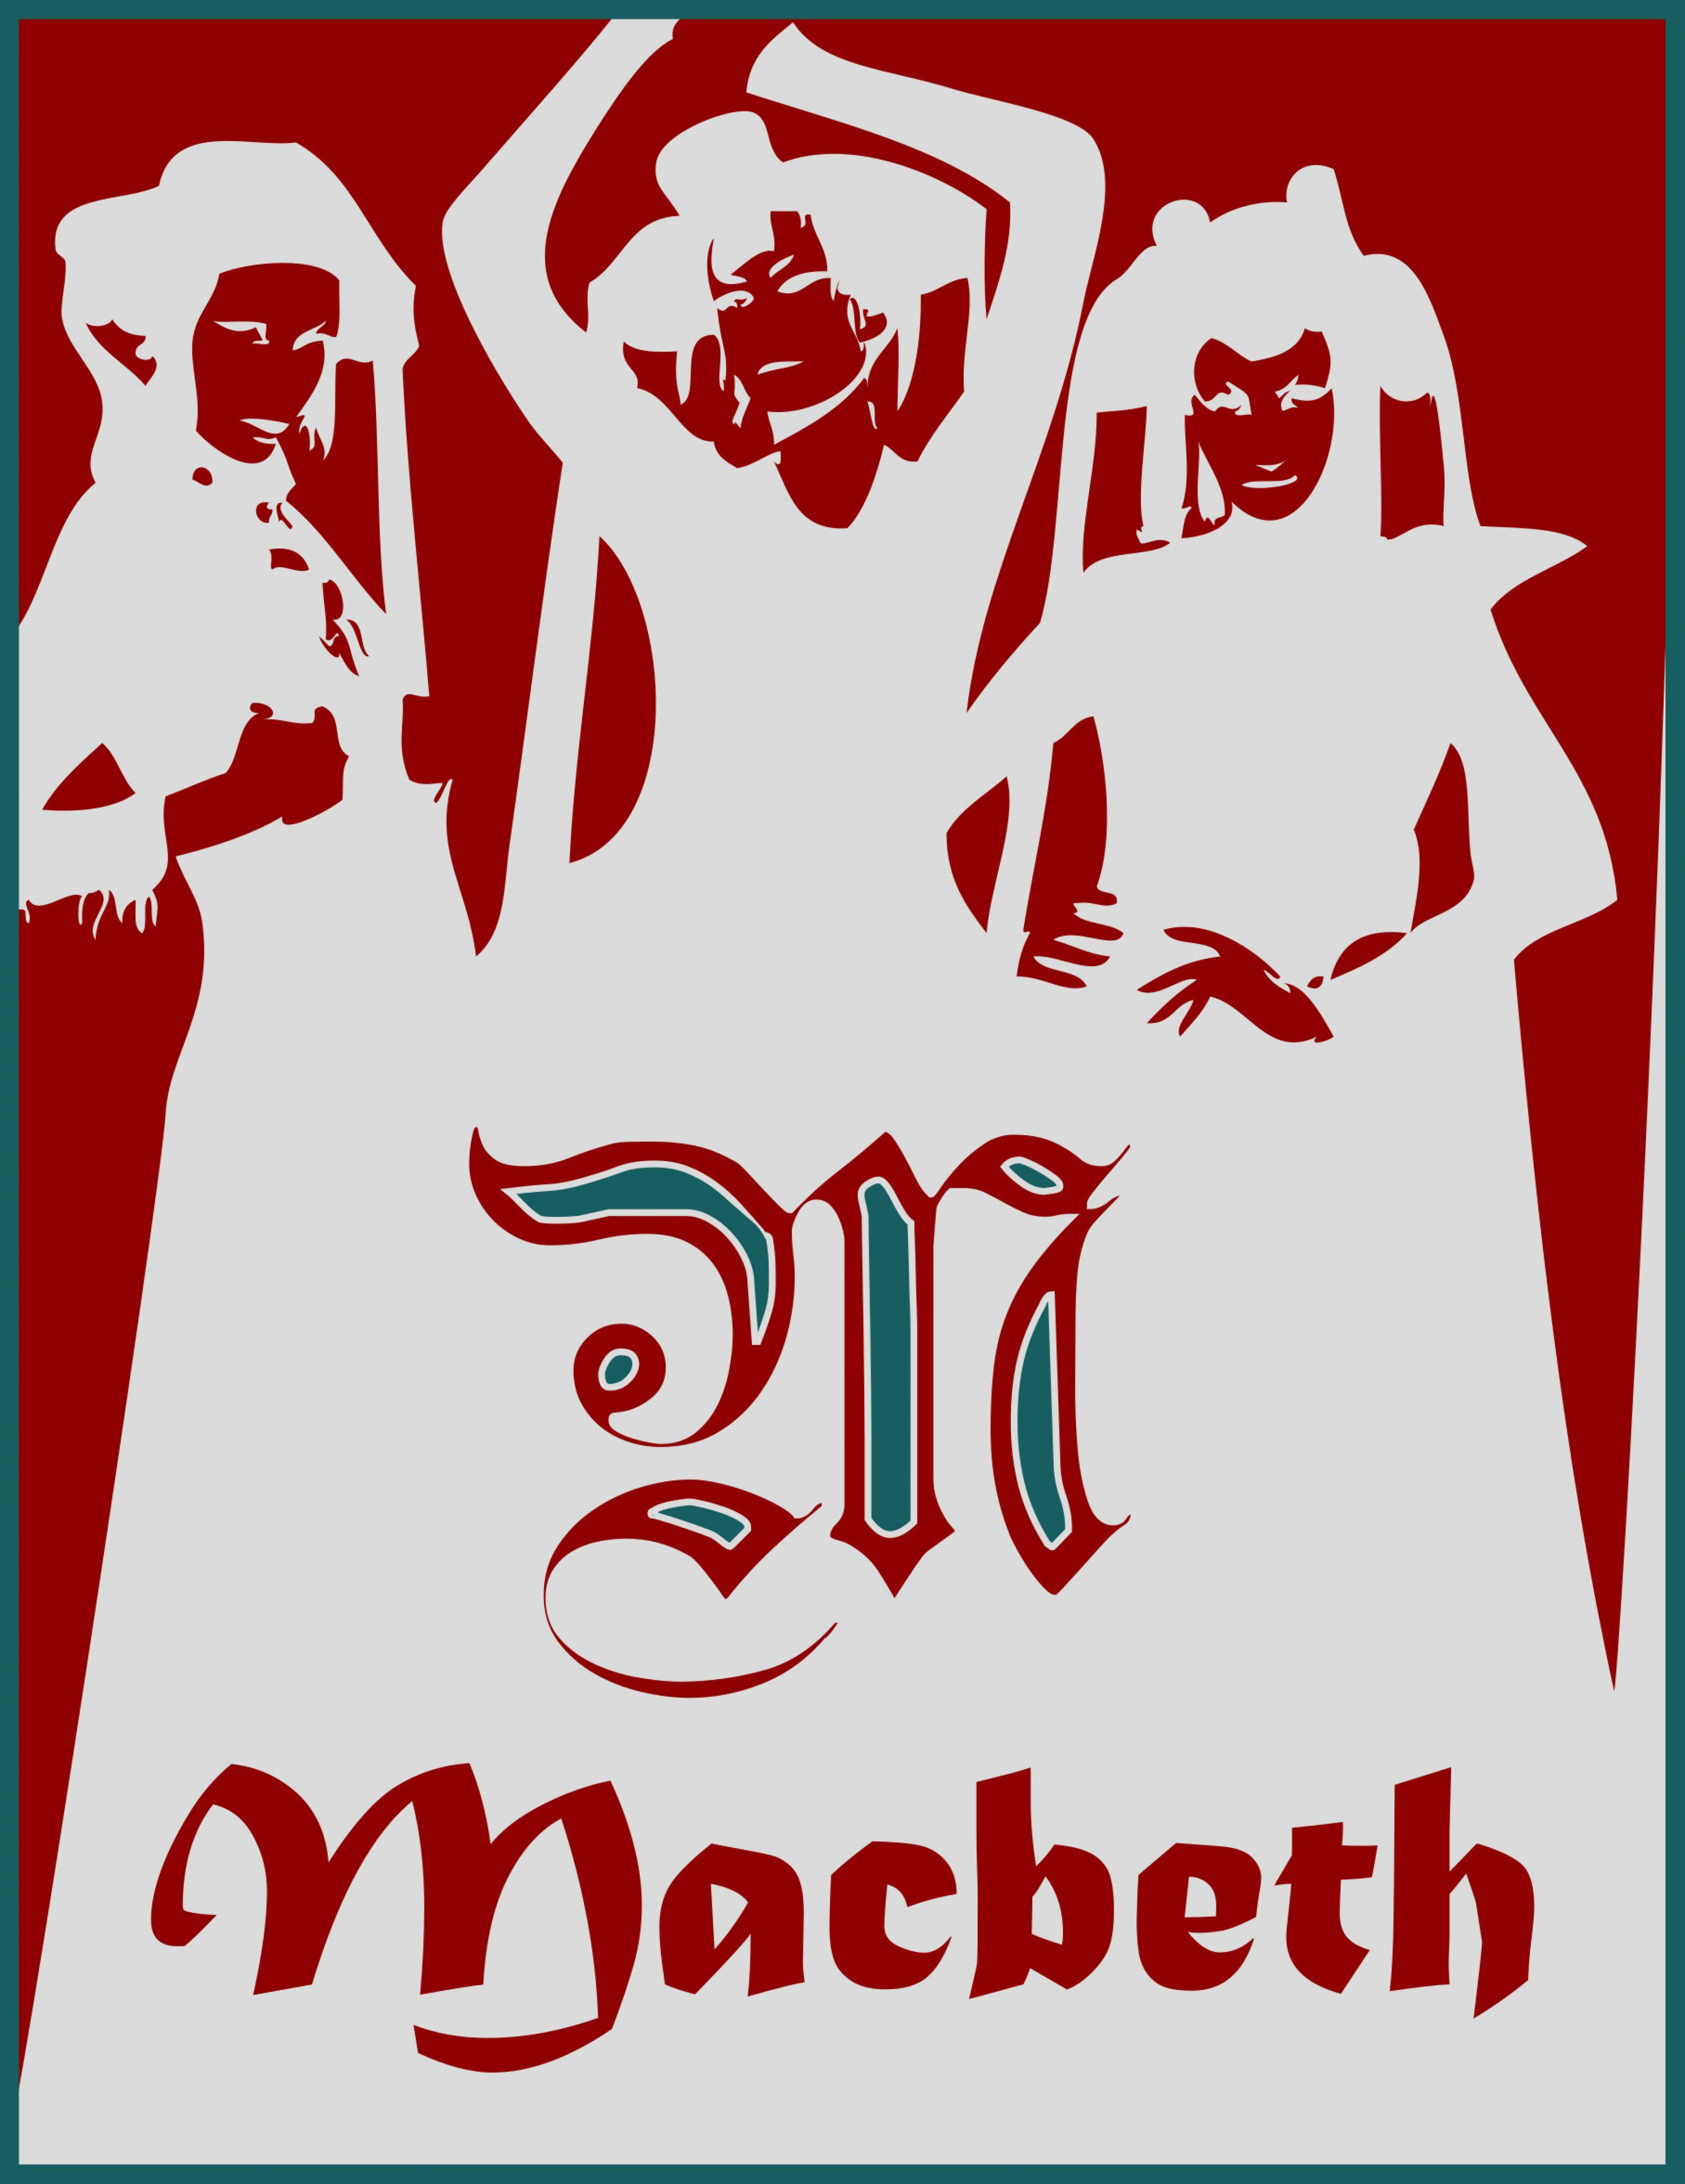 publicity image for Macbeth